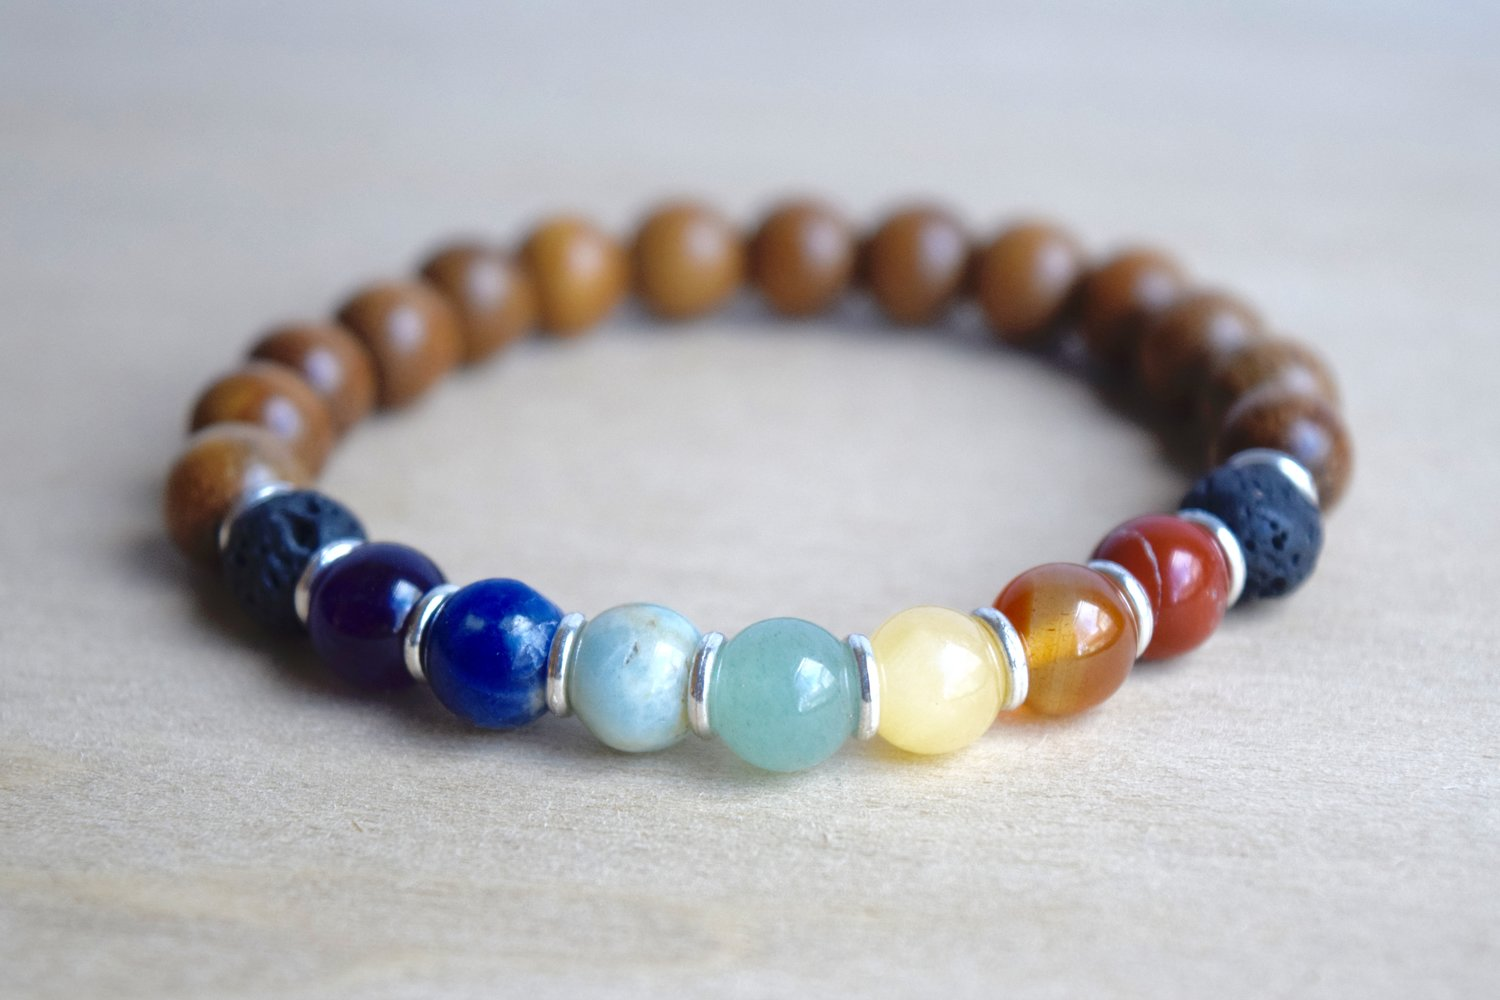 eye healing products tiger product image bracelet stone bohemian earth